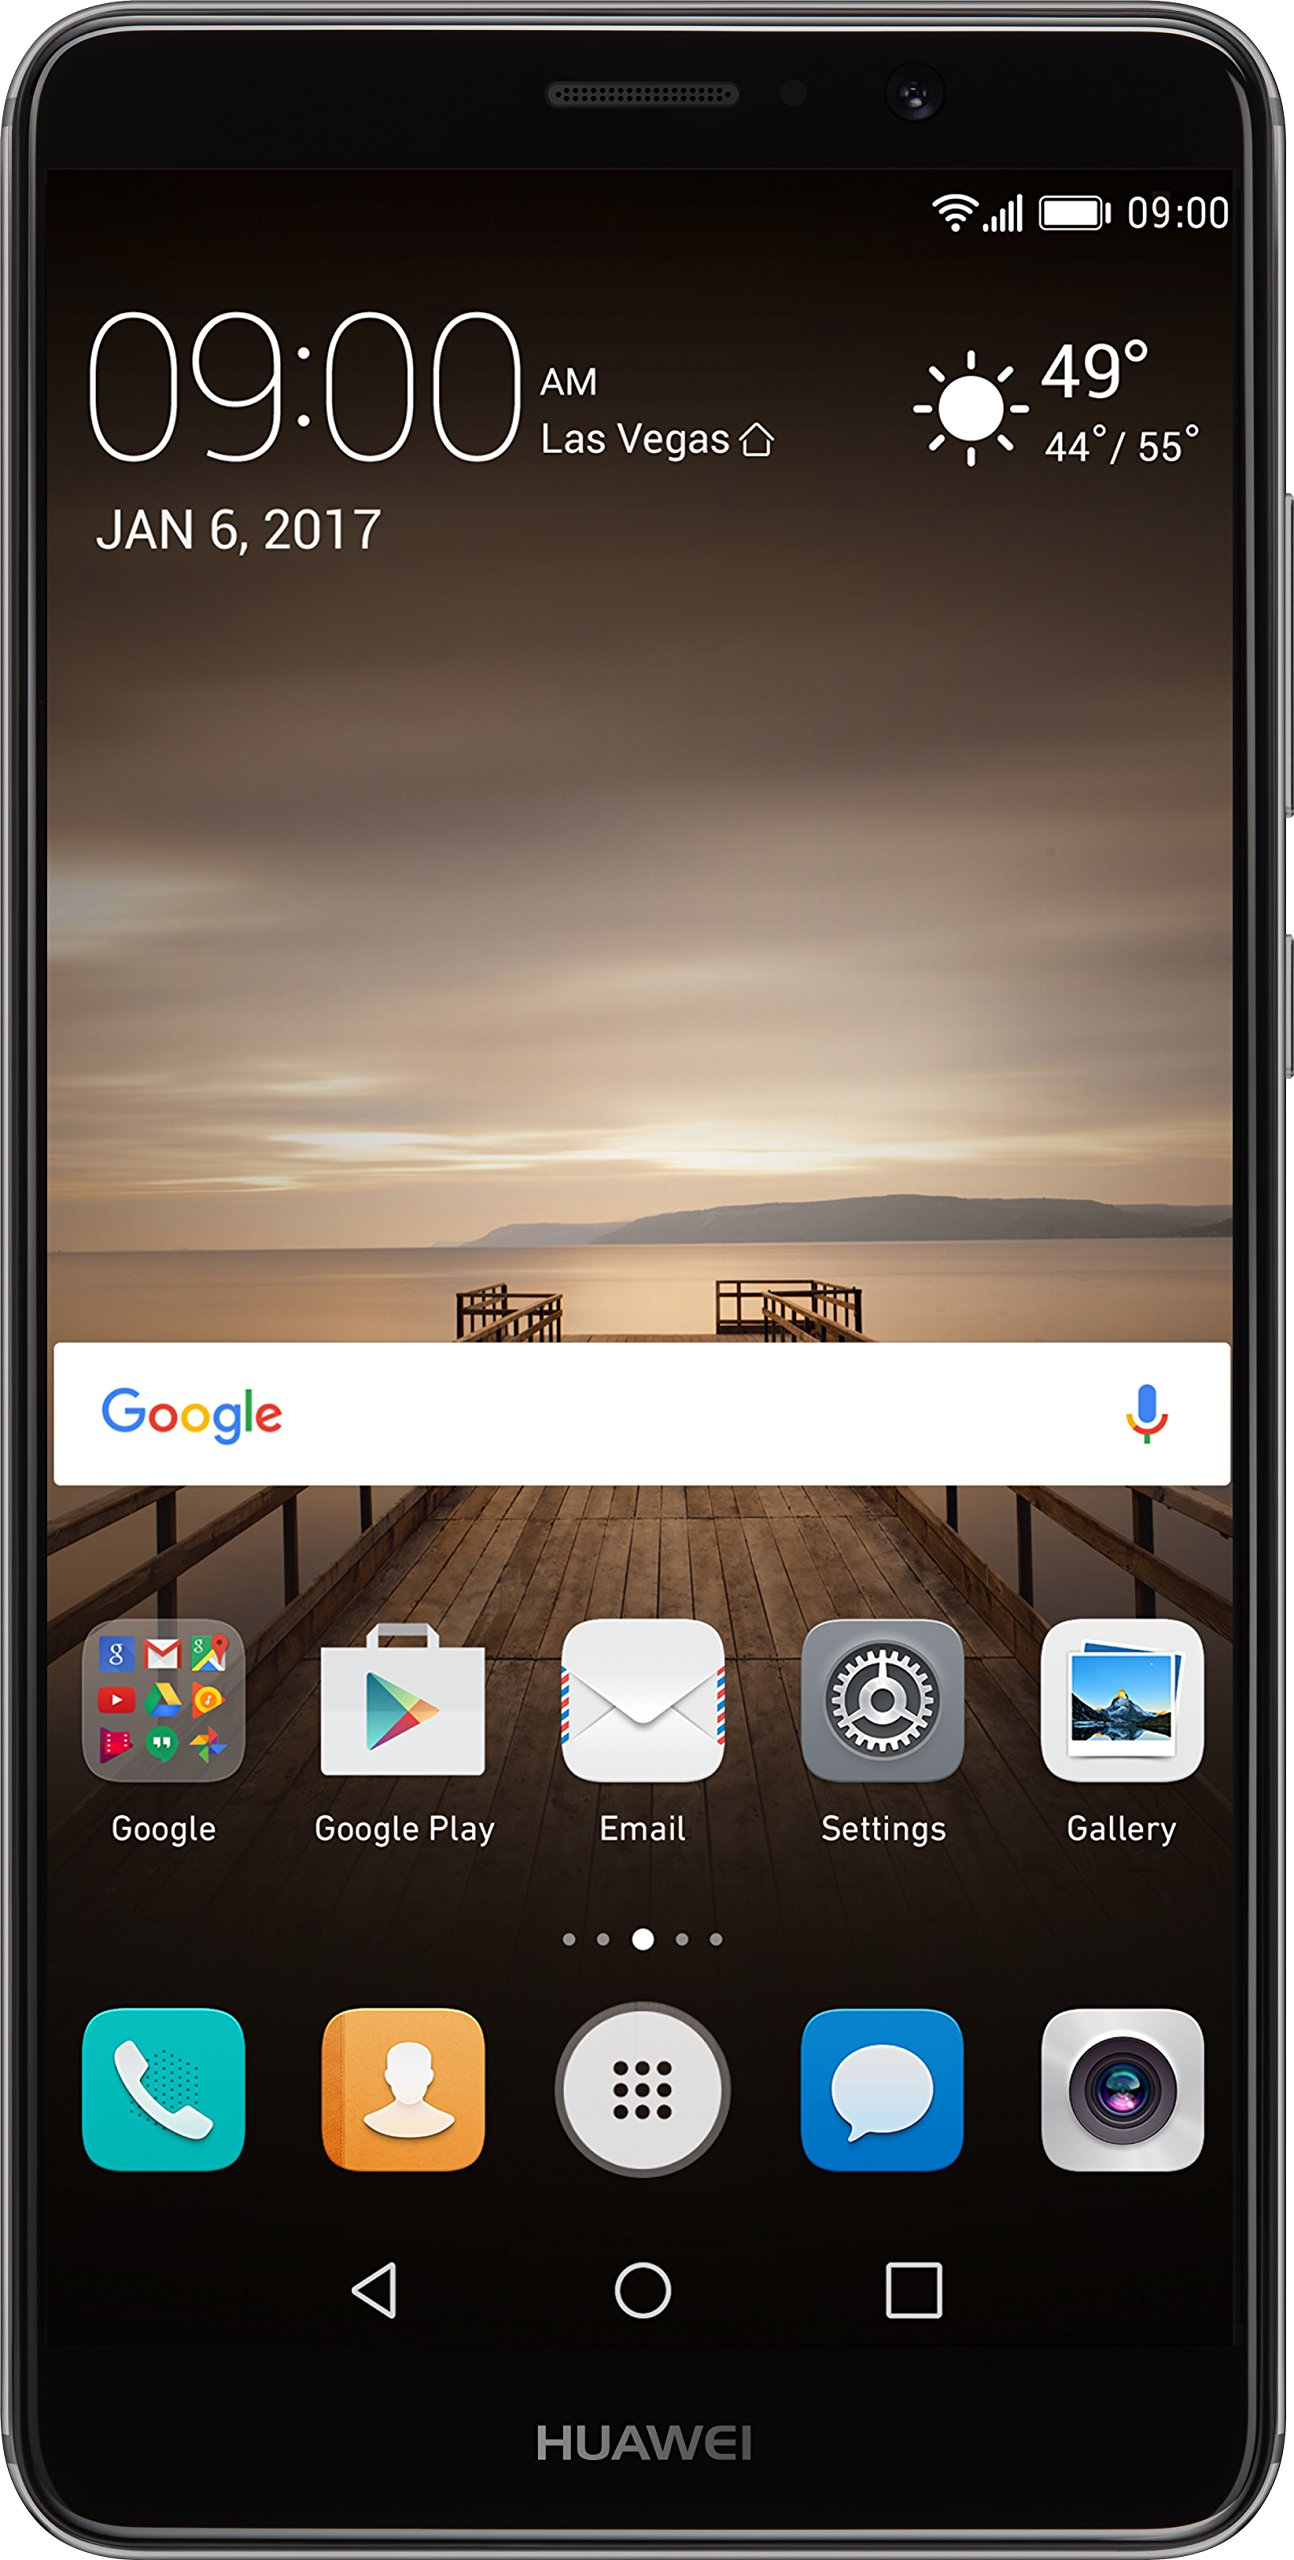 Huawei Mate 9 with Amazon Alexa and Leica Dual Camera - 64GB Unlocked Phone - Space Gray (US Warranty) by Huawei